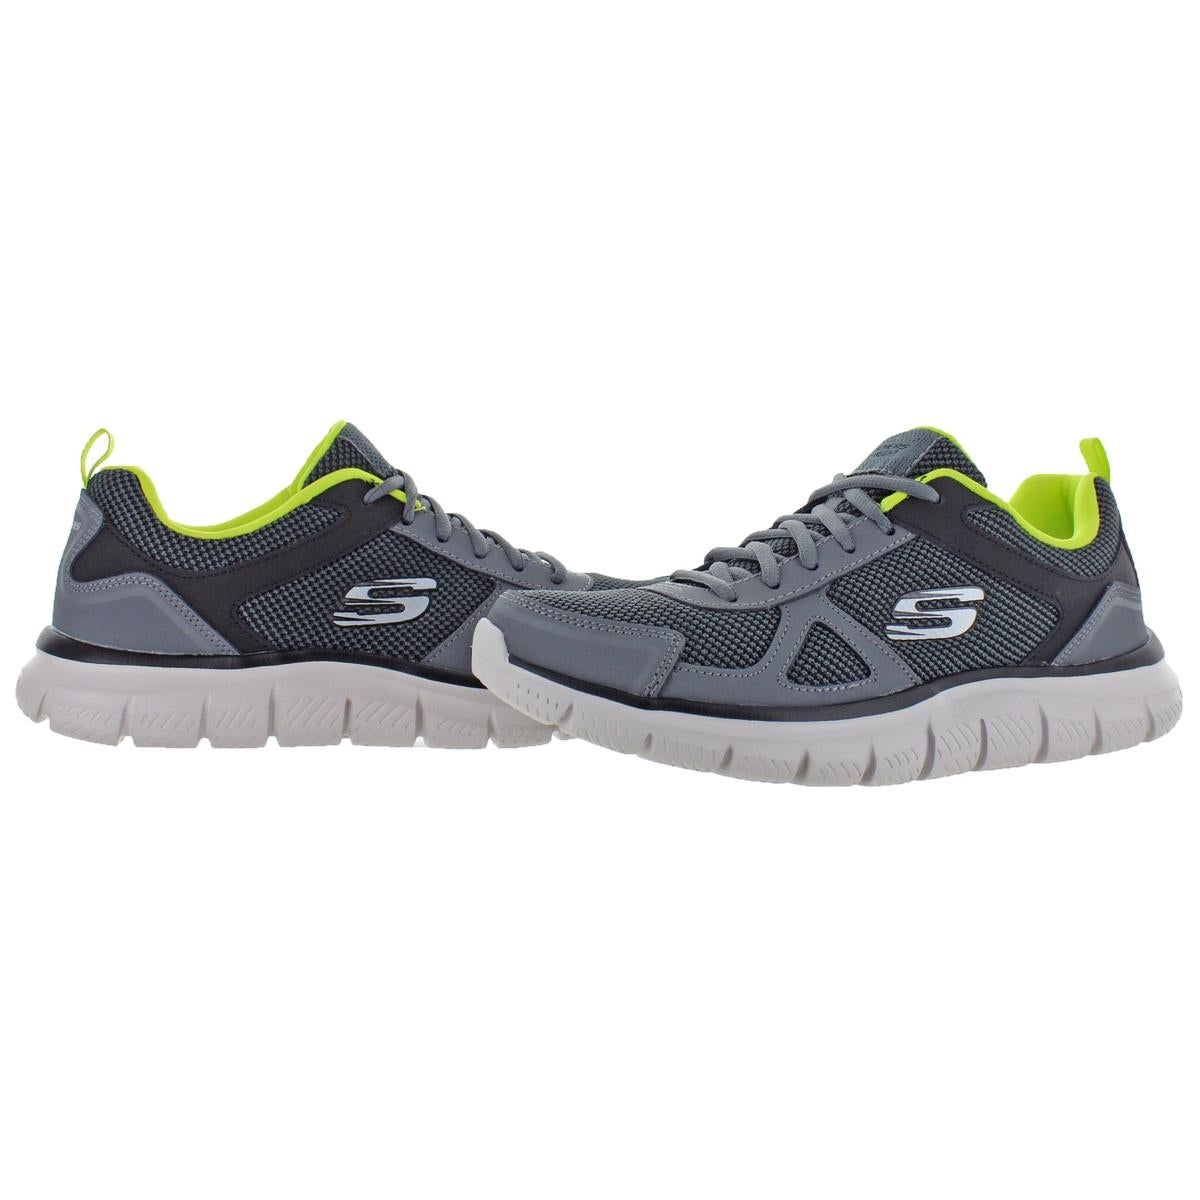 Shop Skechers Mens Track-Bucolo Running Shoes Leather Memory Foam - Free  Shipping On Orders Over  45 - Overstock.com - 27043848 92d0a67f9